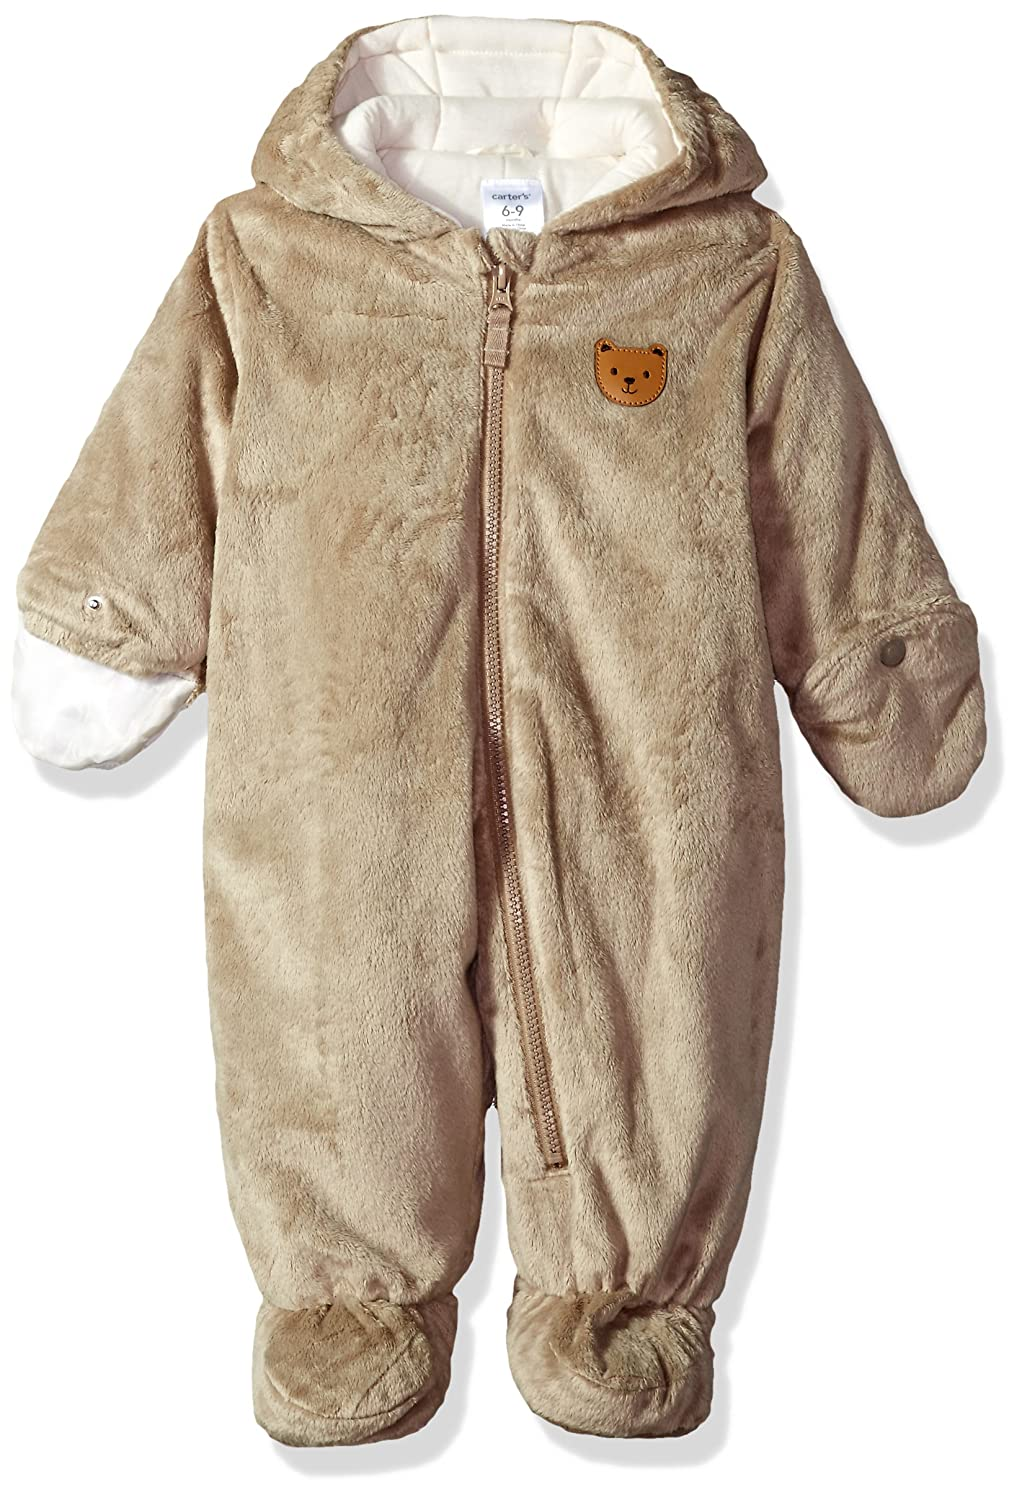 add62a6a8 Amazon.com  Carter s Baby Hooded Sherpa Pram Sleep   Play  Clothing